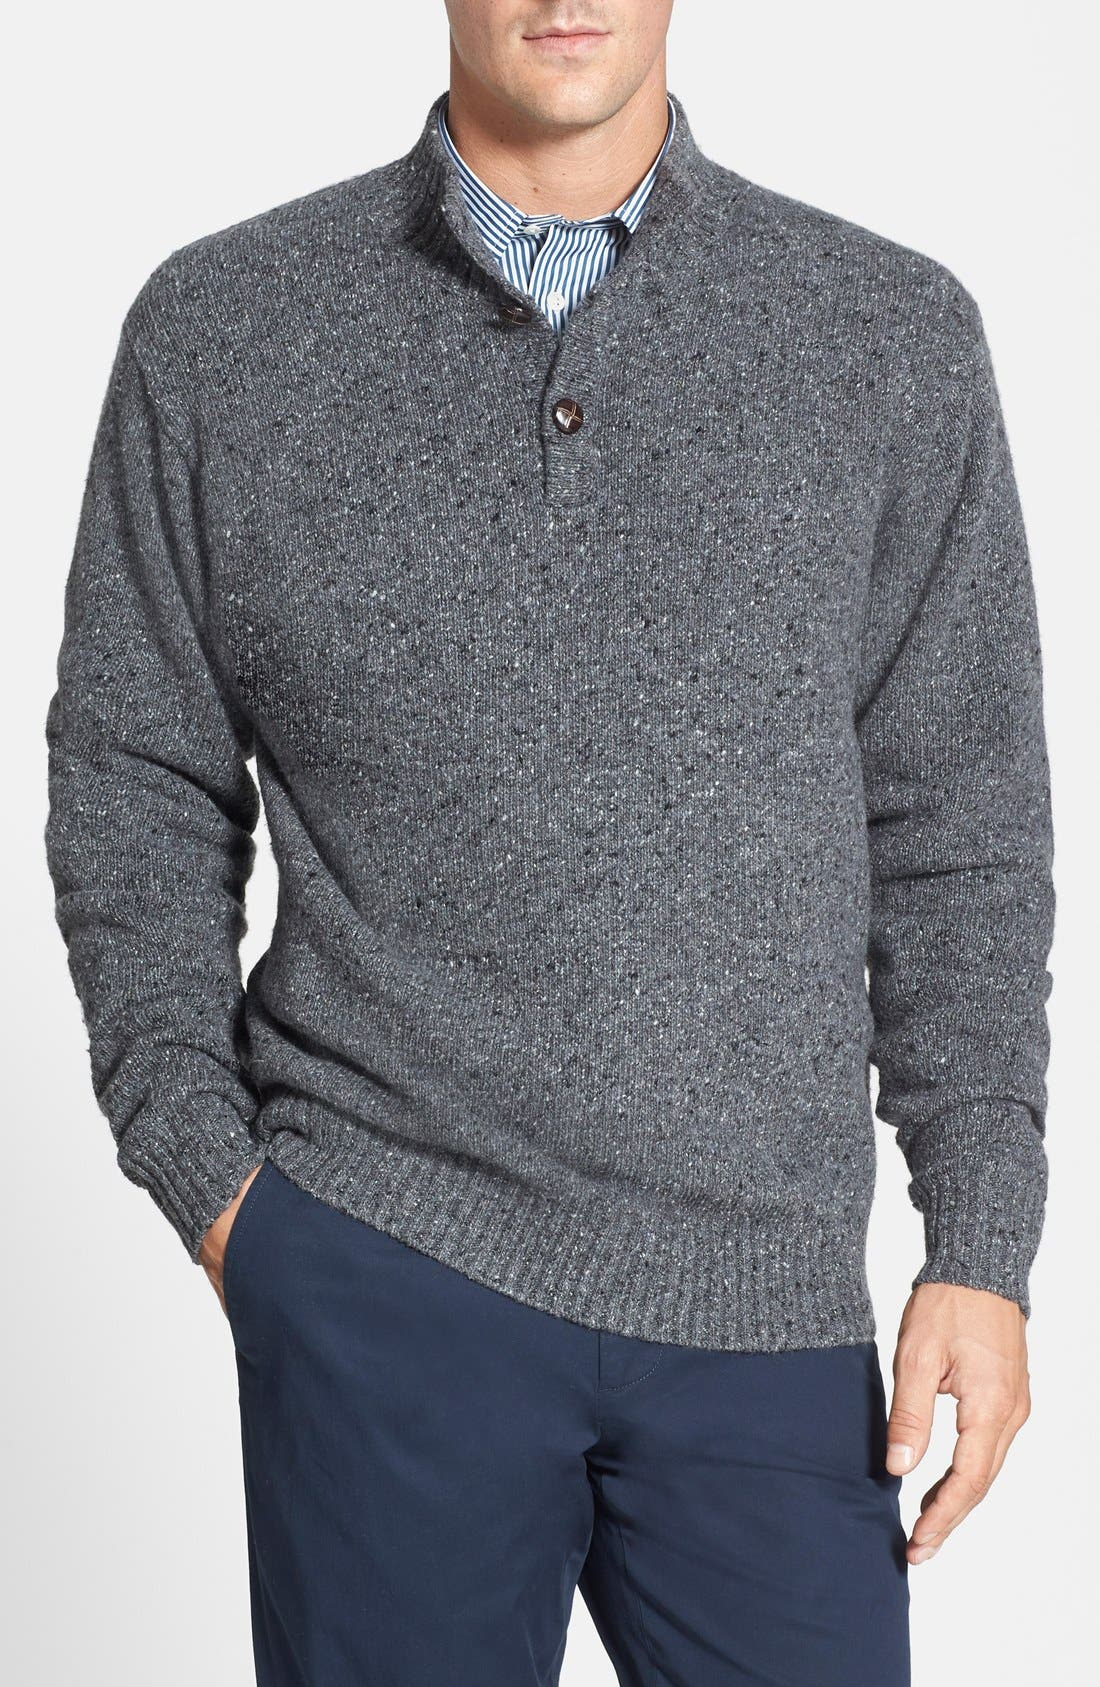 Donegal Italian Wool Blend Pullover,                             Main thumbnail 1, color,                             022